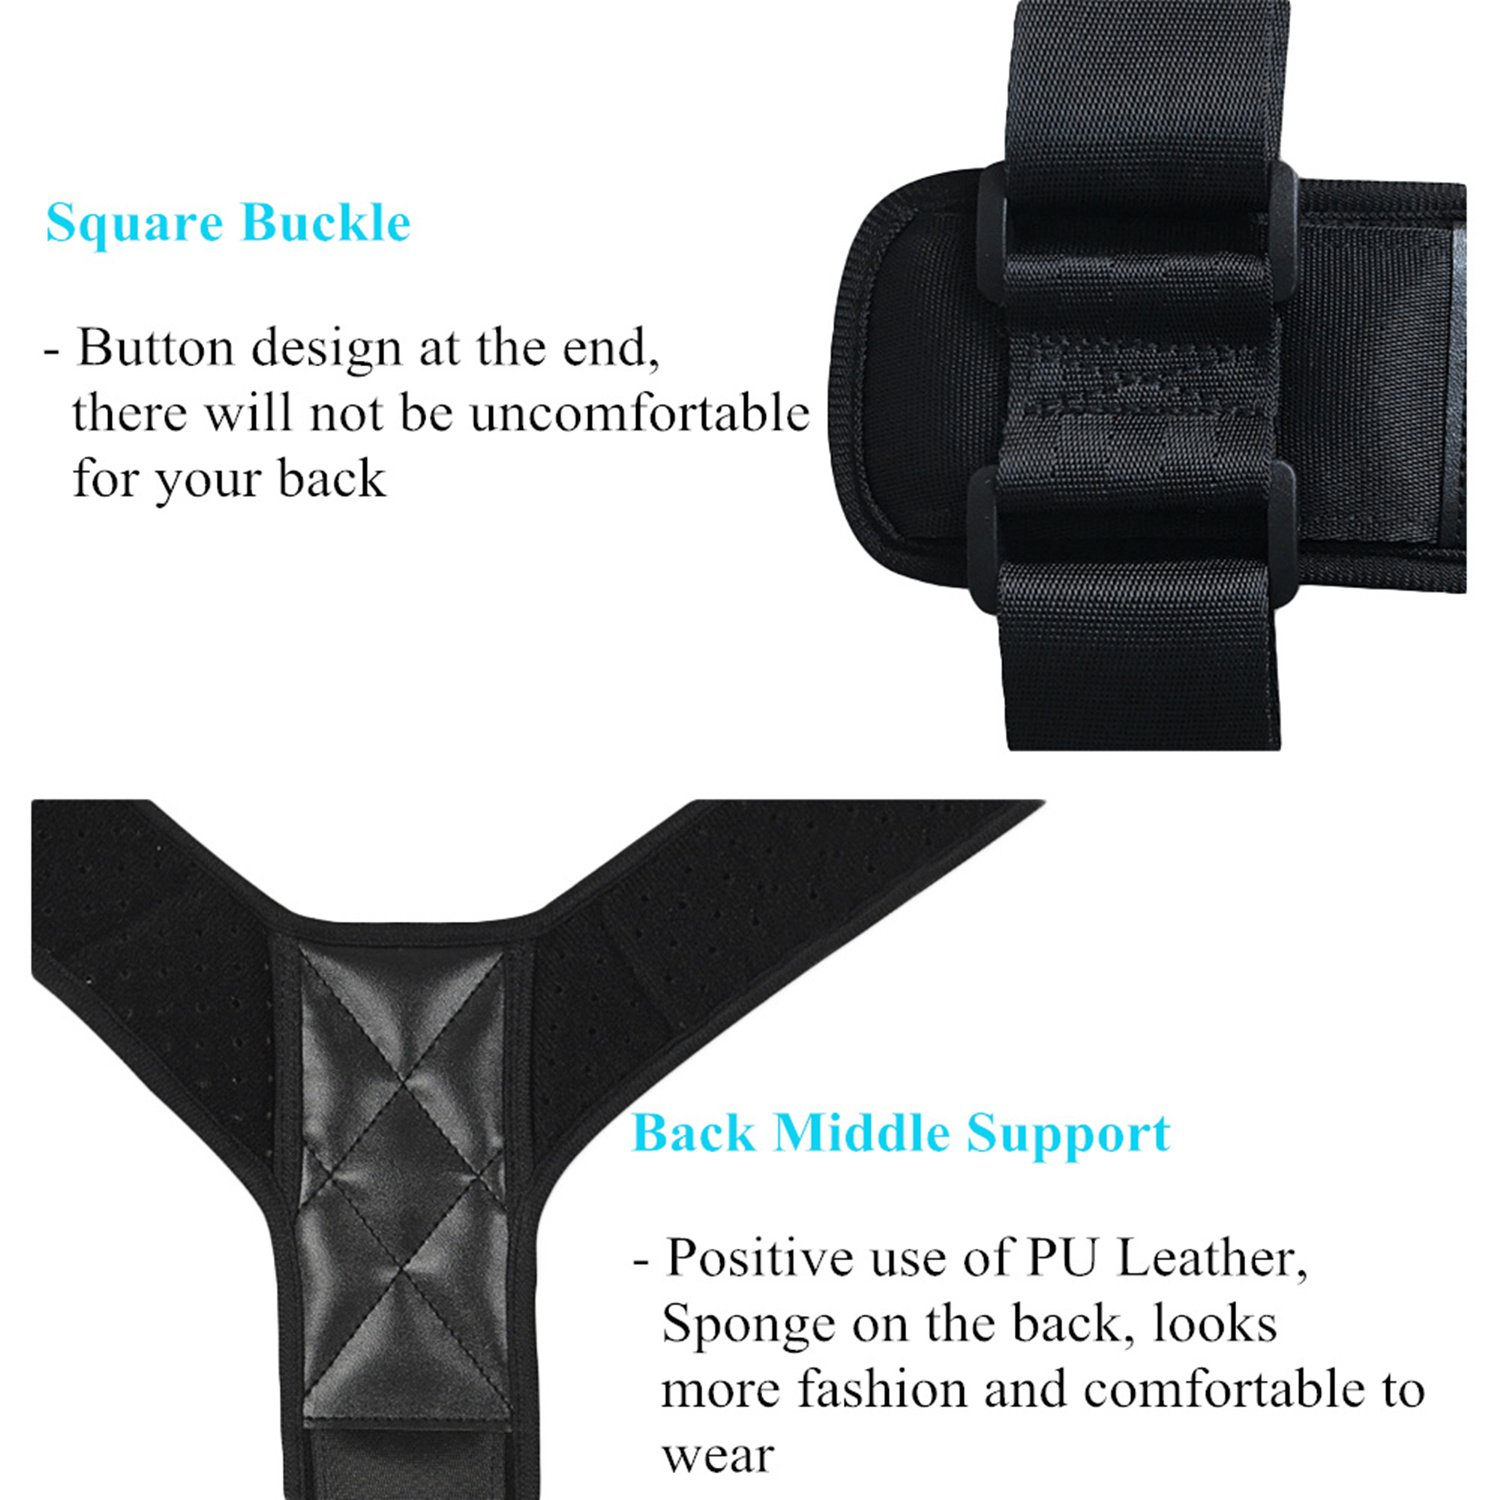 Conbays Back Posture Corrector for Women Men Adjustable Clavicle Brace Support Shoulder Connector Upper Back Pain Relief Posture Support Strap for Home Office by Conbays (Image #5)